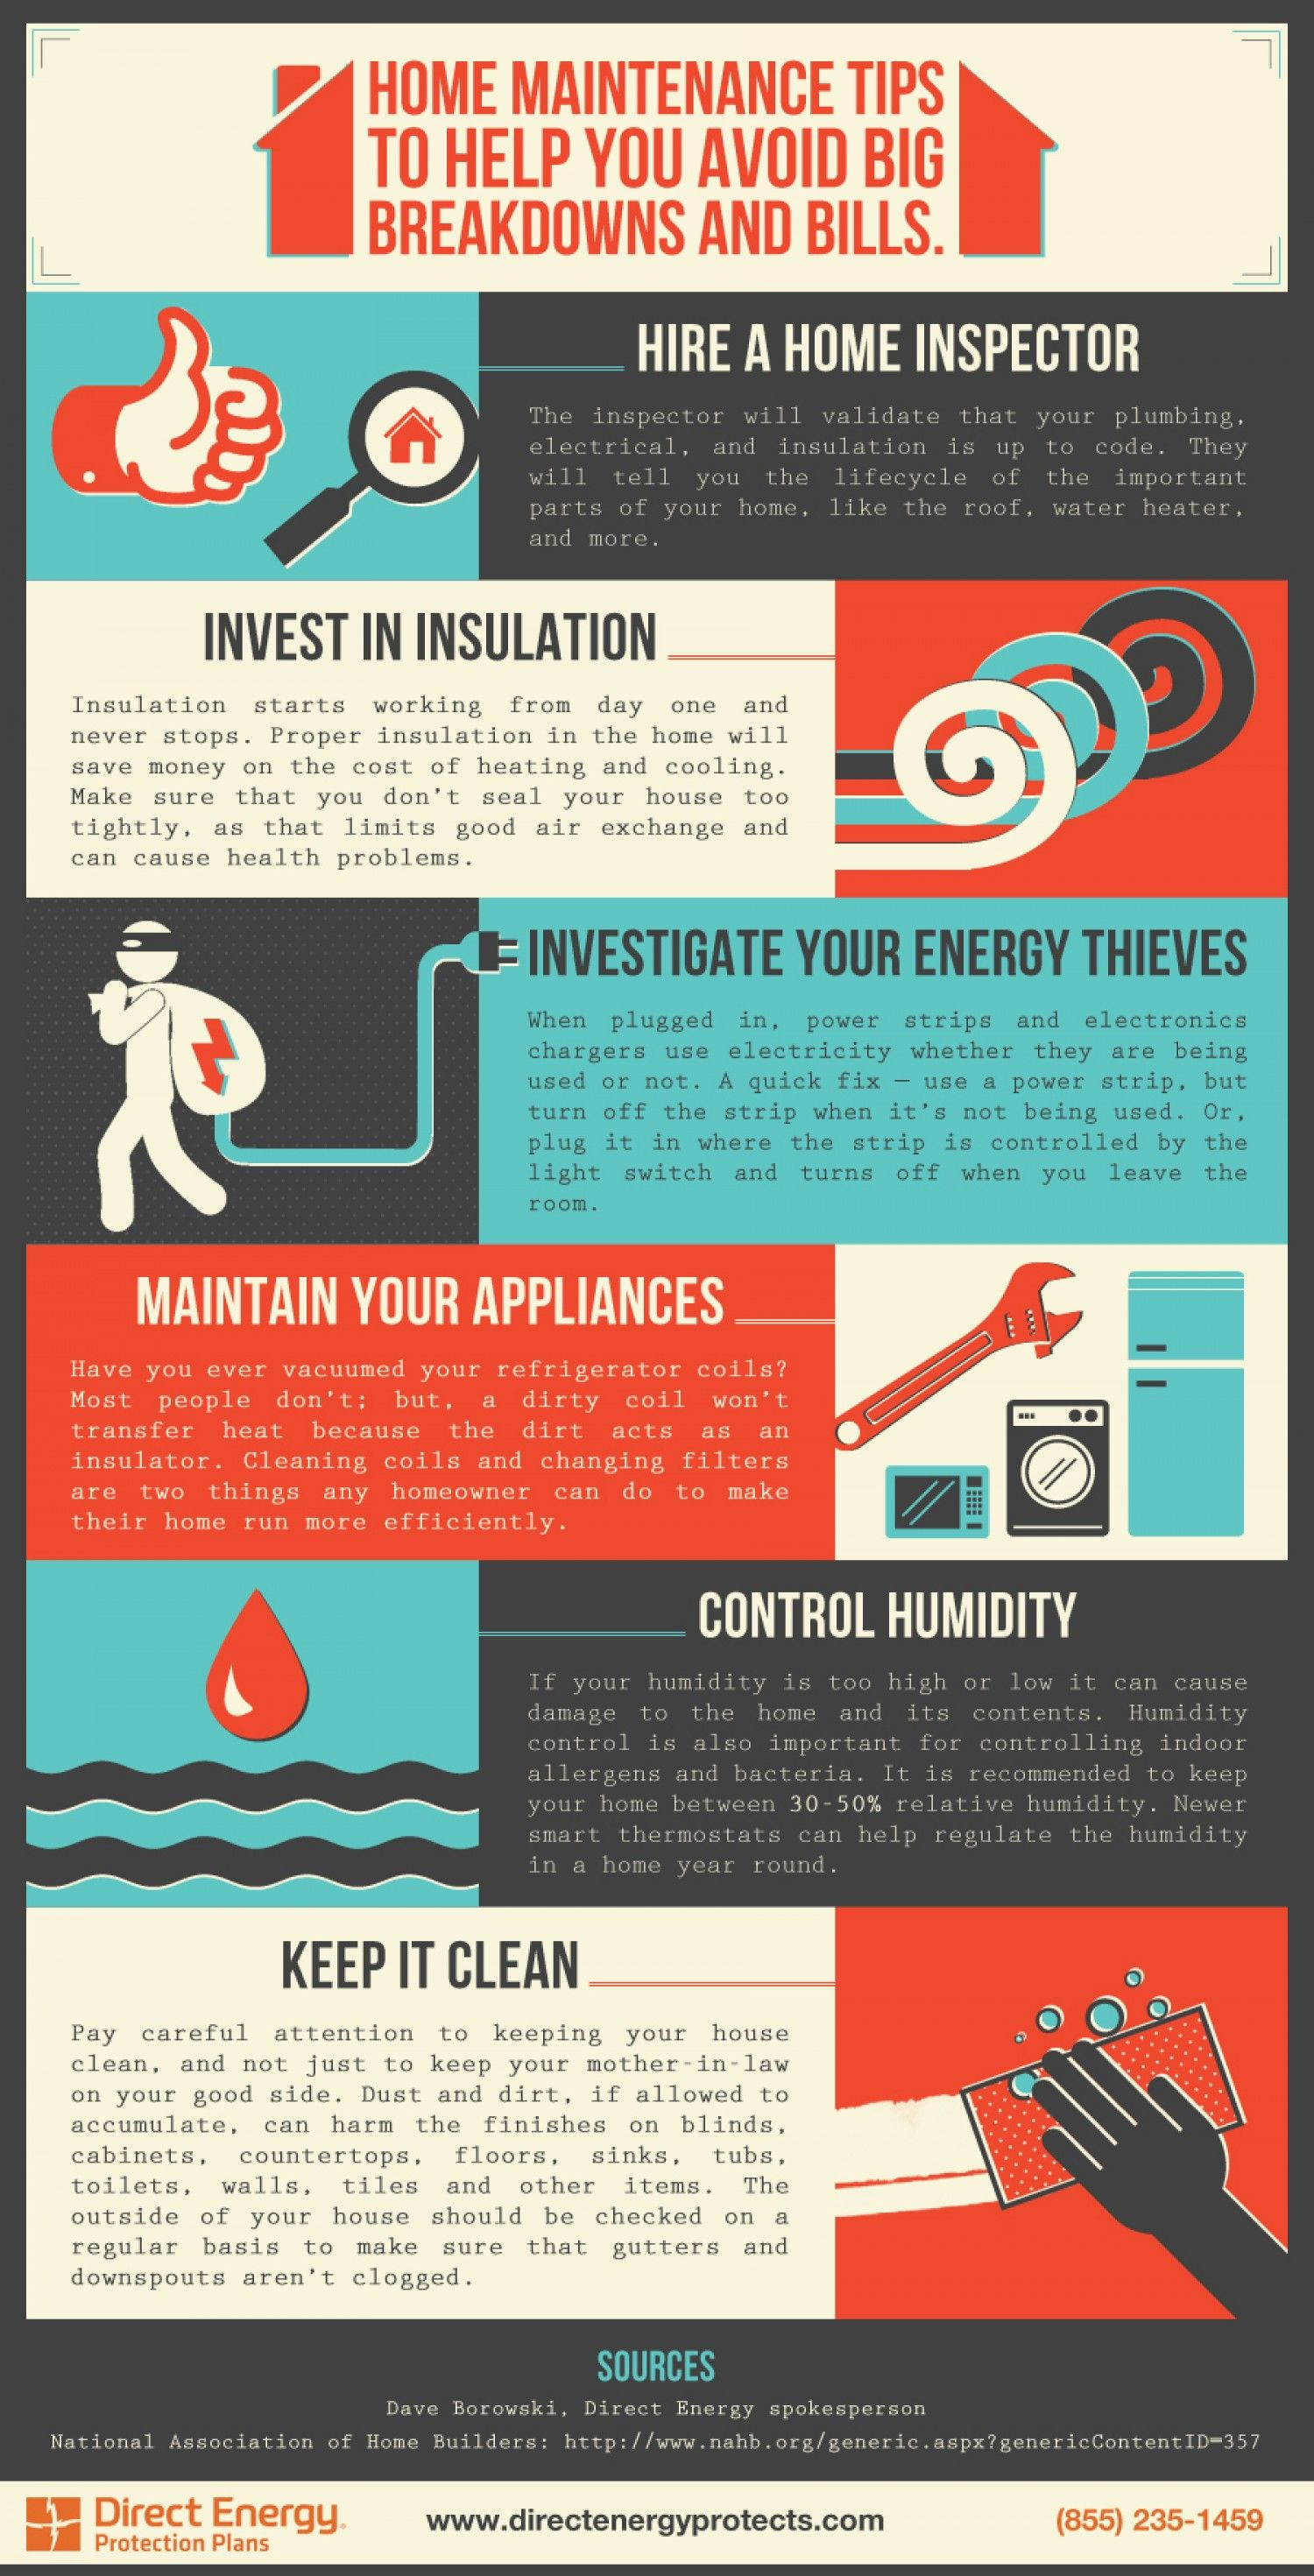 Home Maintenance Tips Infographic Home maintenance, Home